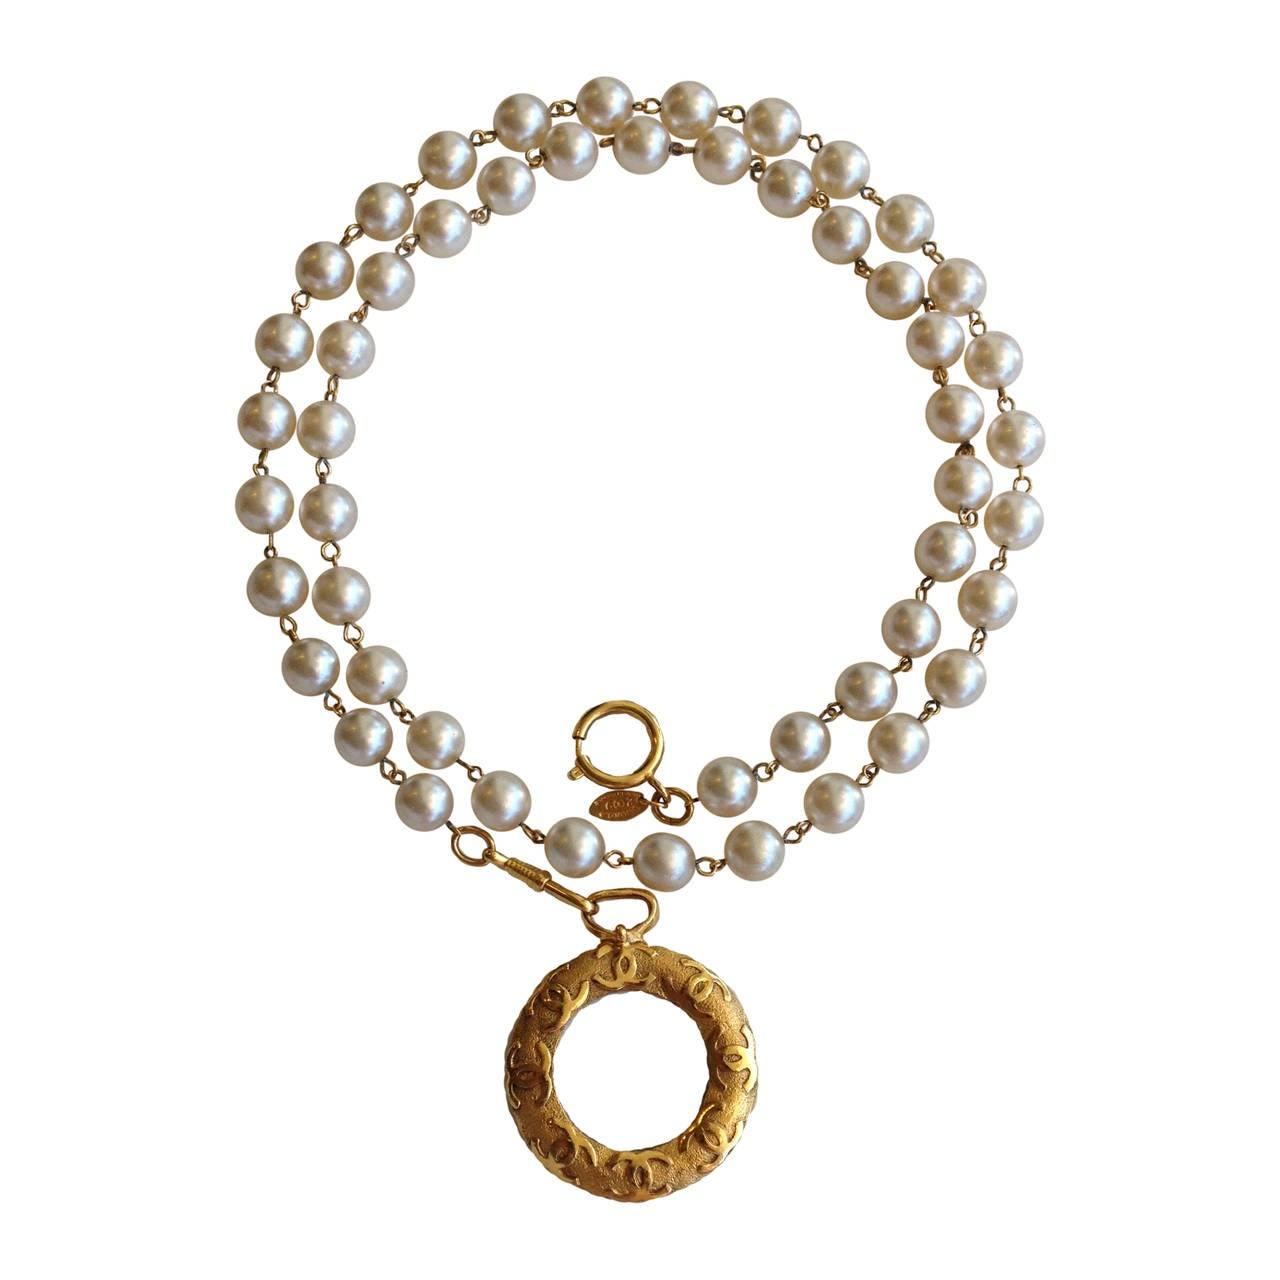 Chanel Pearl Necklace With Gold Tone Magnifying Glass Pendant 1